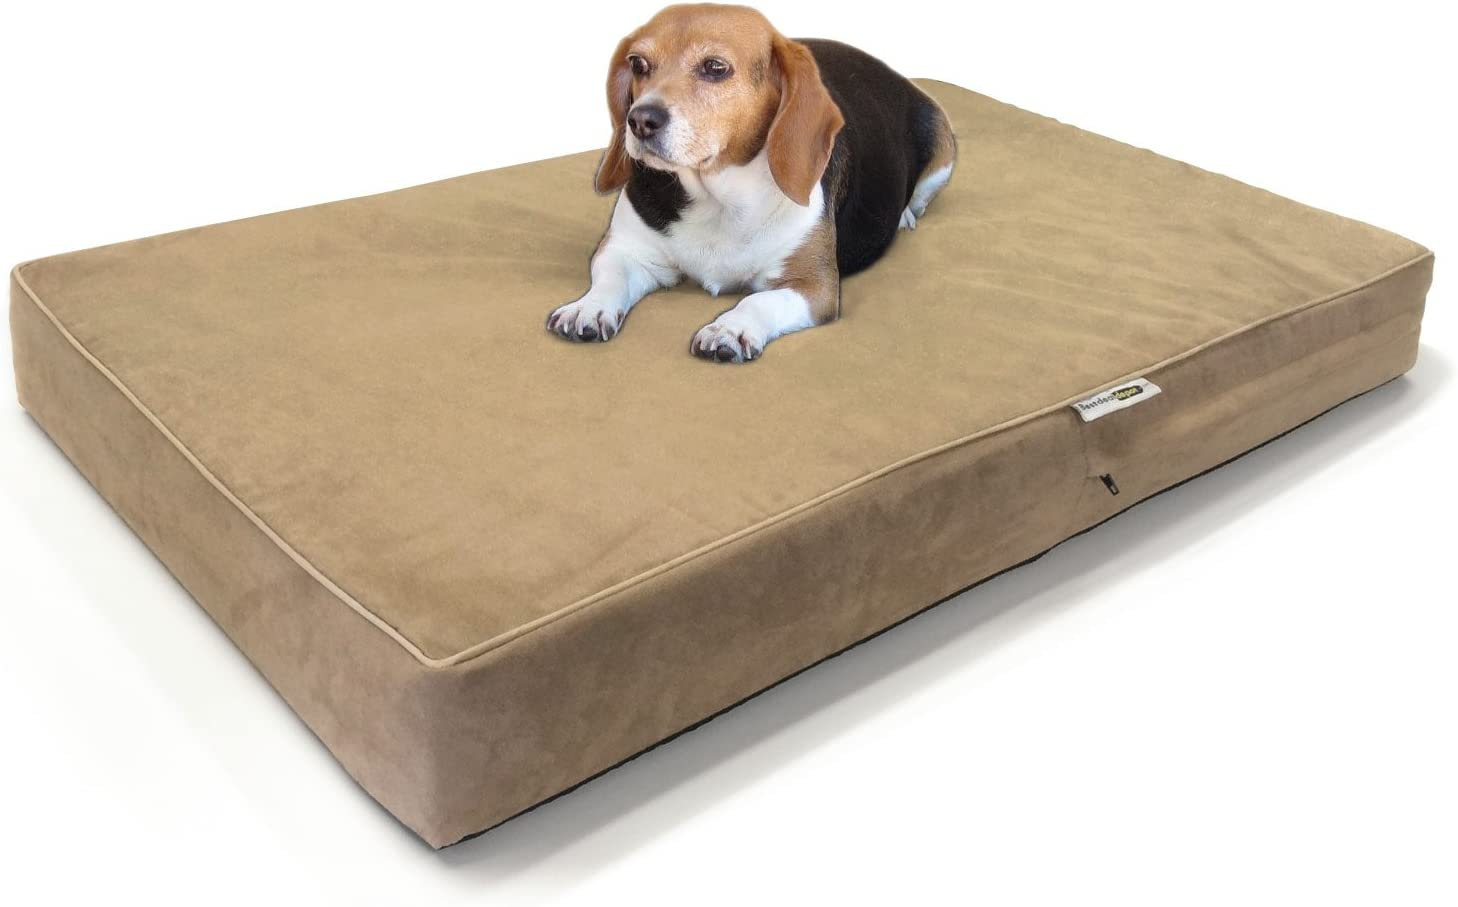 Large Dog Bed Premium Solid Memory Foam Pet Bed Dog Mat with Waterproof Cover Color Khaki , Size 40 x35 x4